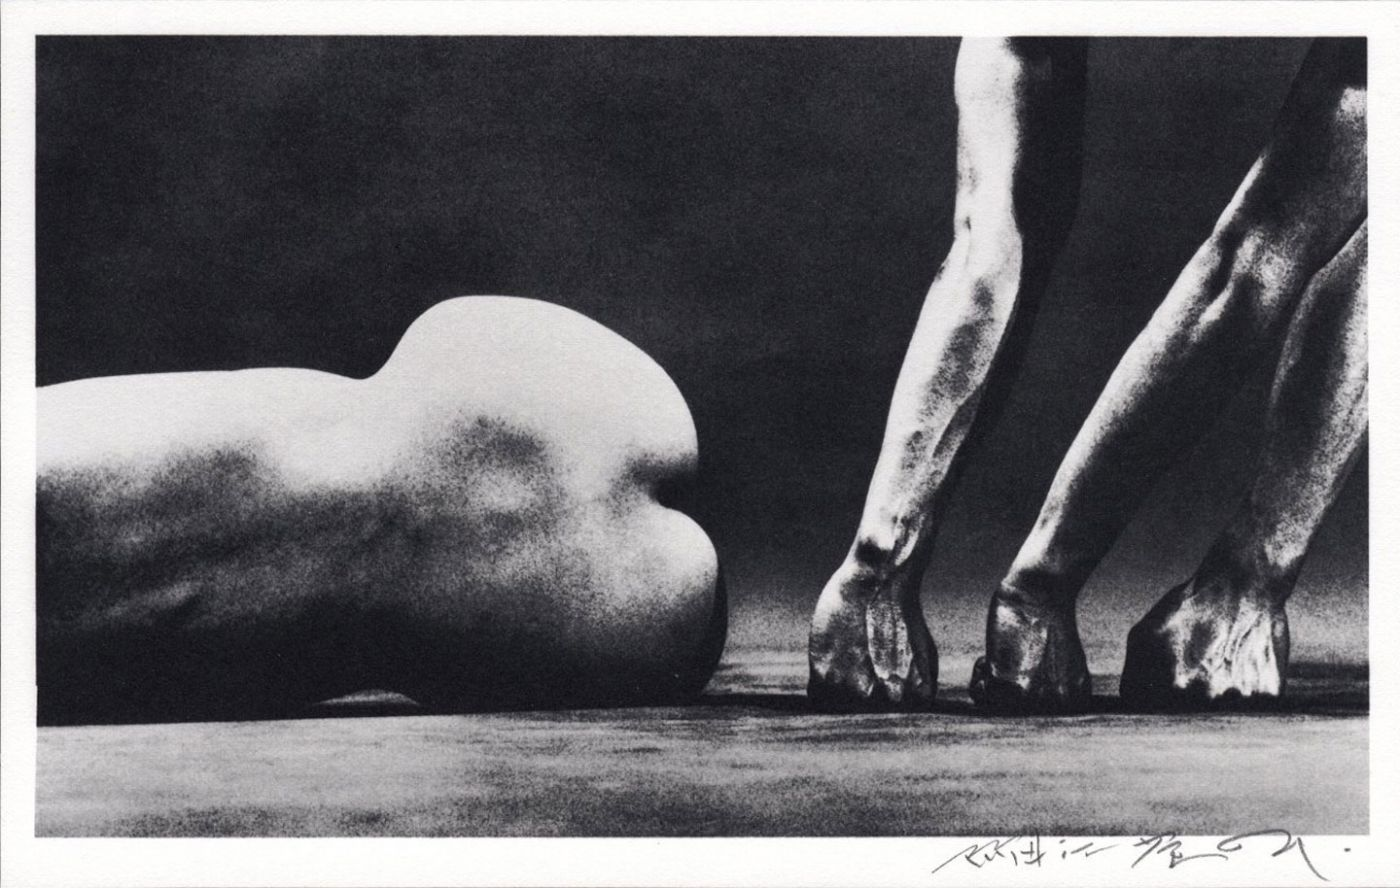 Eikoh Hosoe: Flowers of Evil, Limited Edition (21st Platinum Edition) (with 1 Freestanding and 10 Bound Platinum Prints)